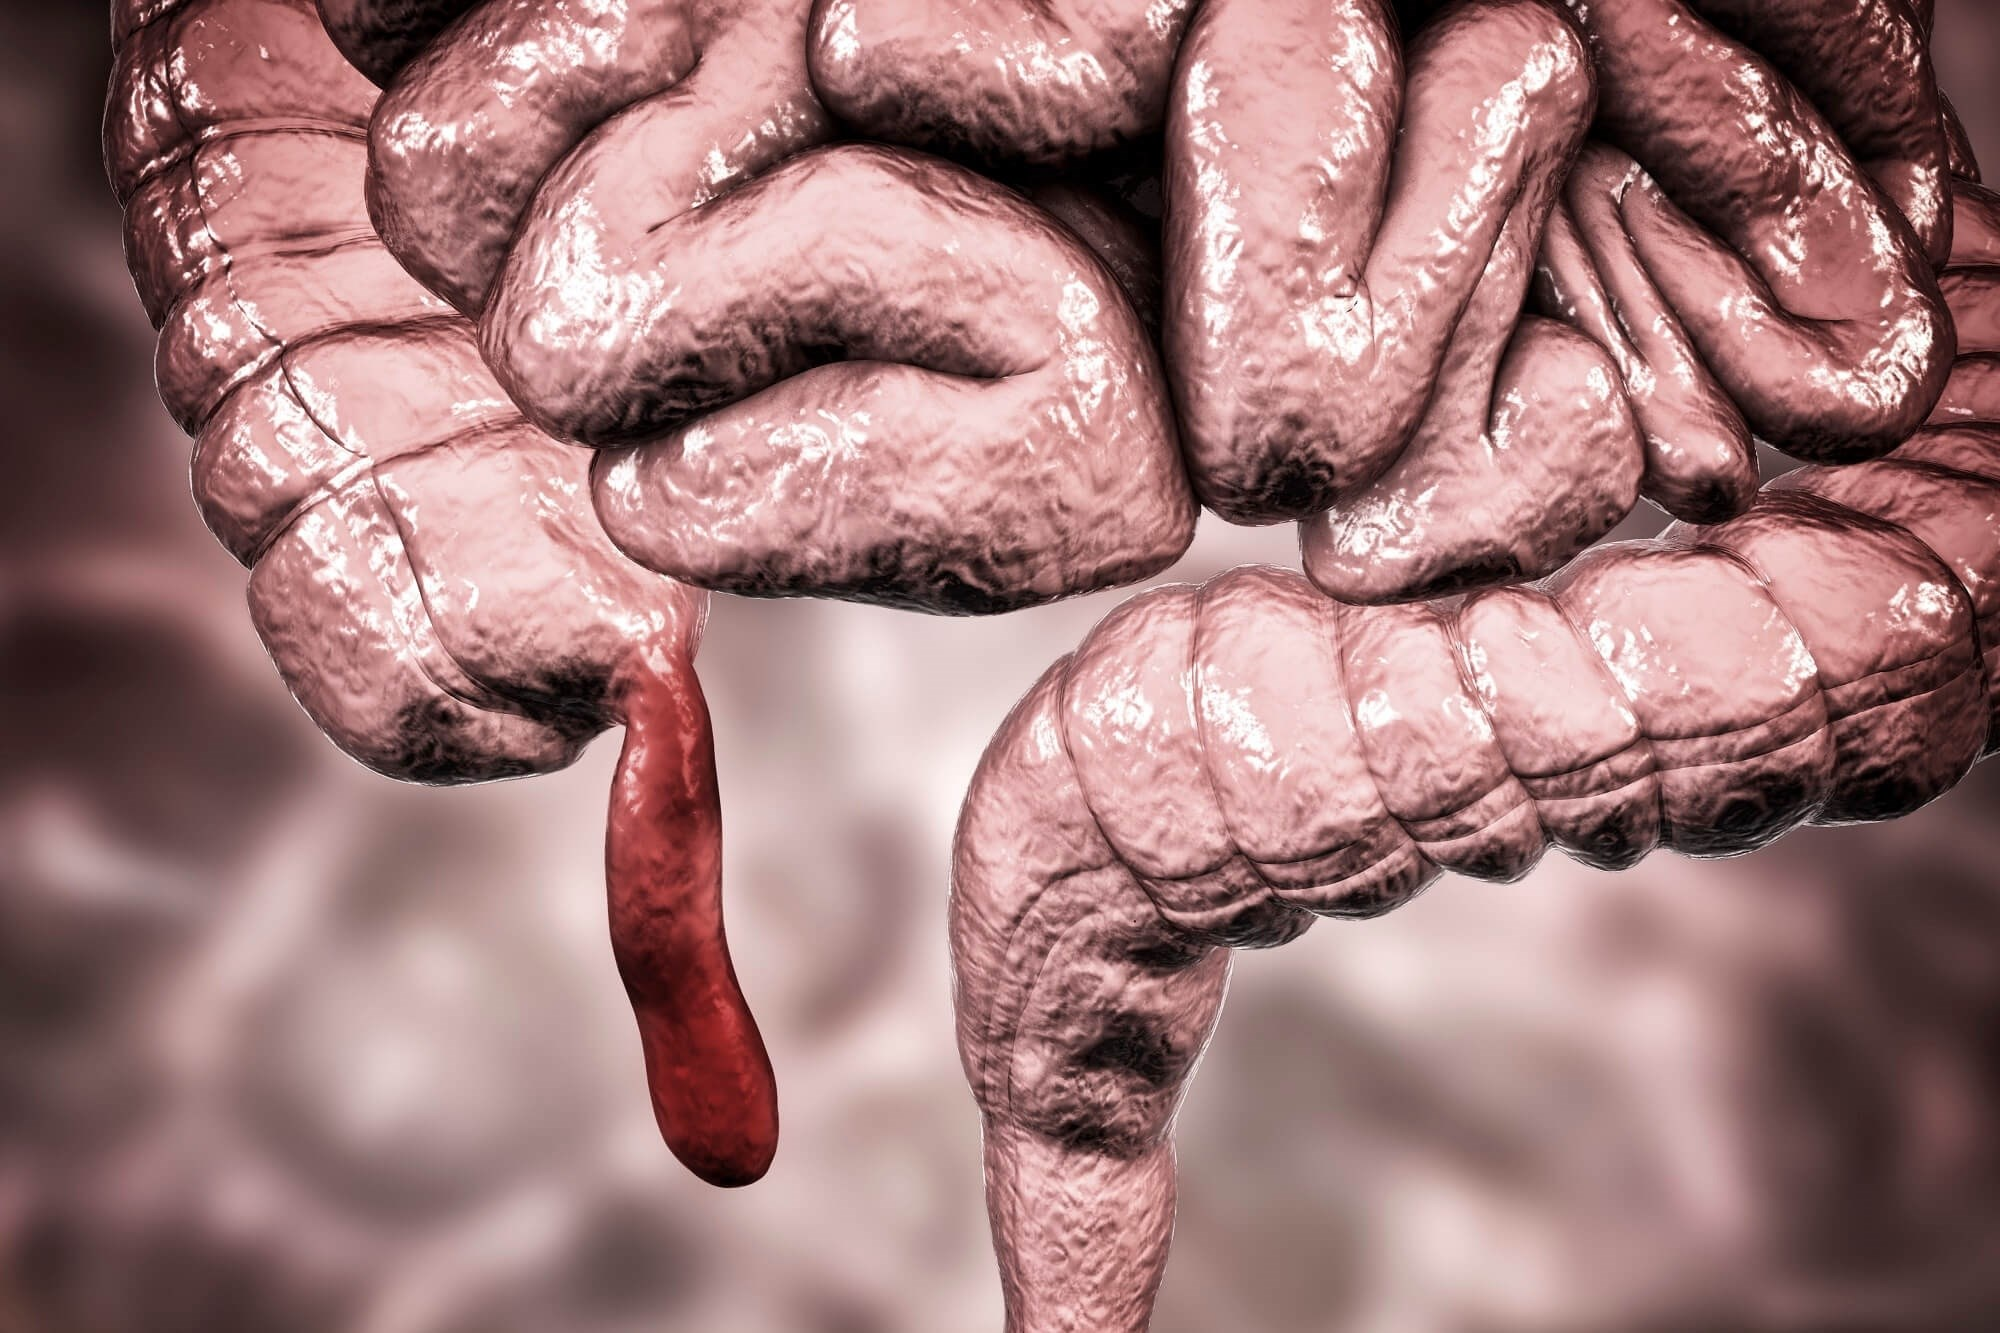 Removing Appendix May Lower Risk for Parkinson Disease